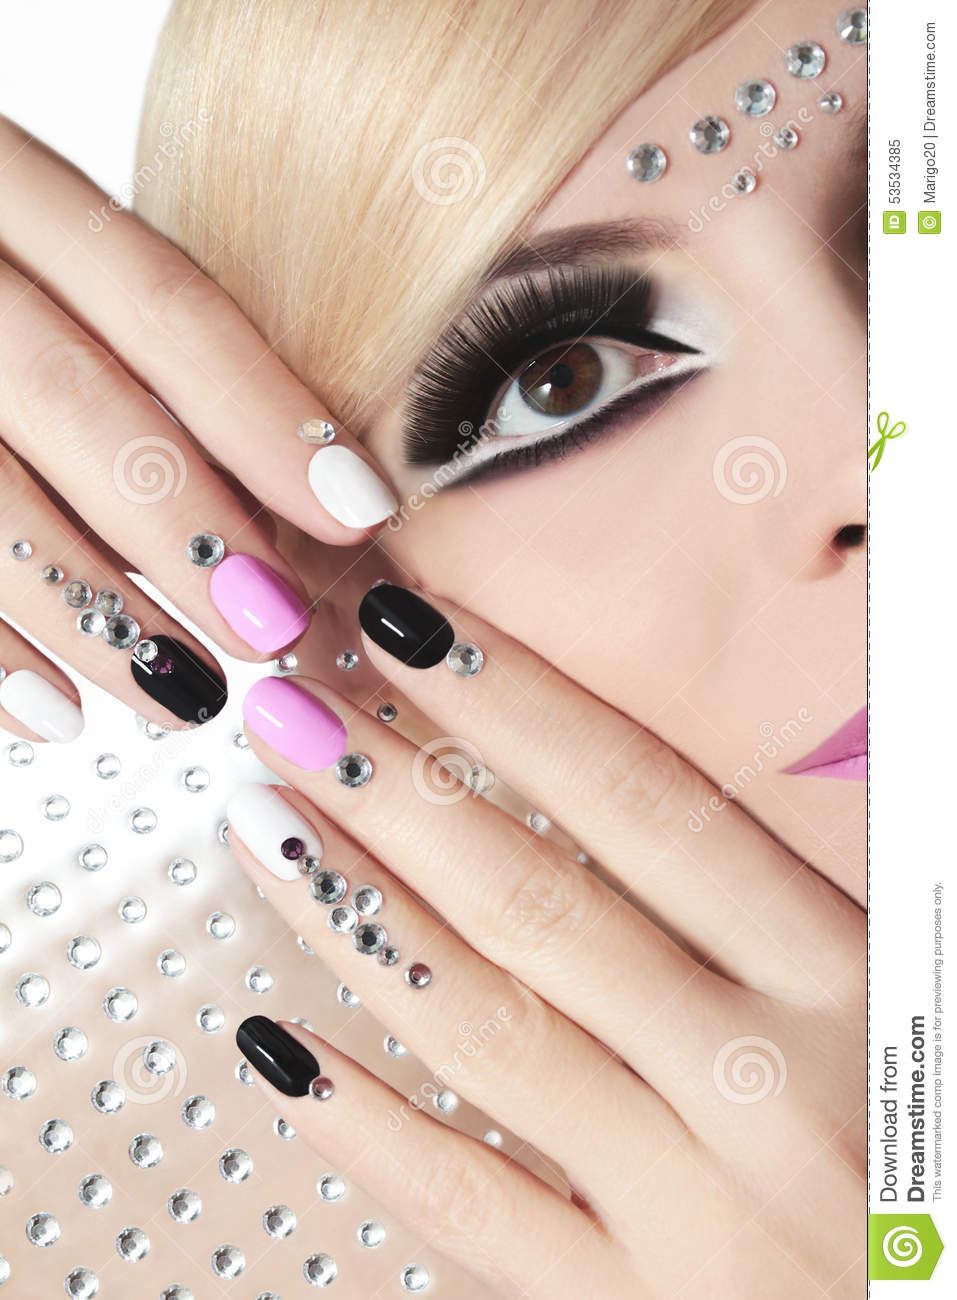 Fashion Nails And Makeup With Rhinestones. Stock Image